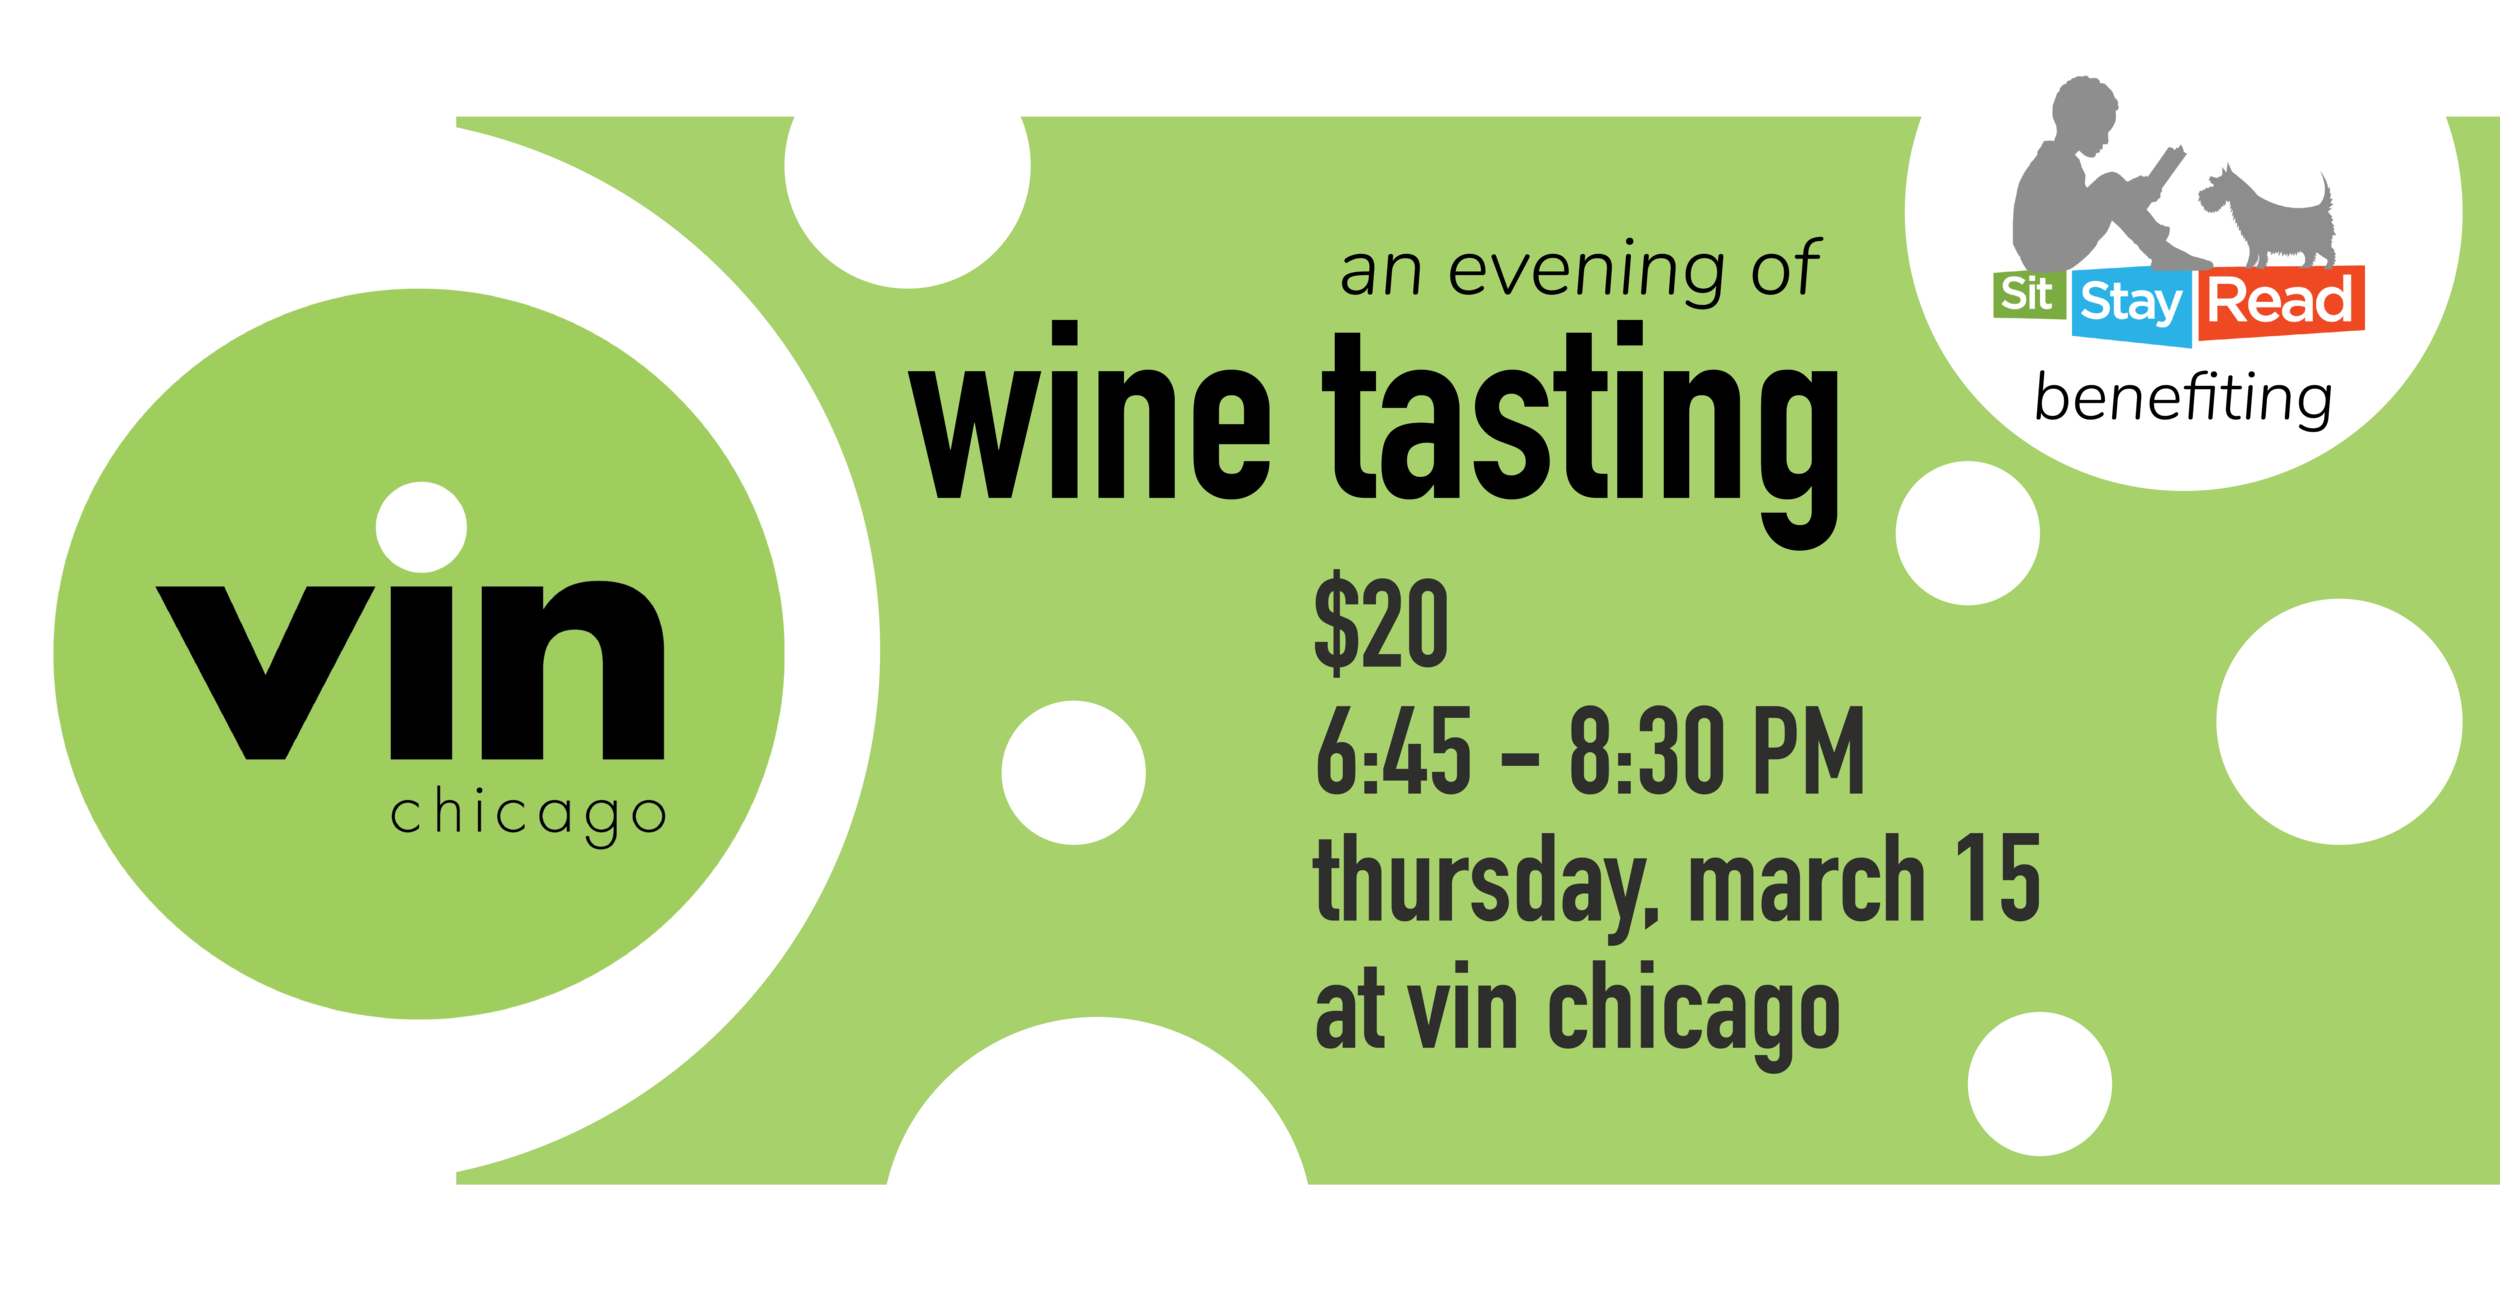 Vin Chicago - An Evening of Wine Tasting